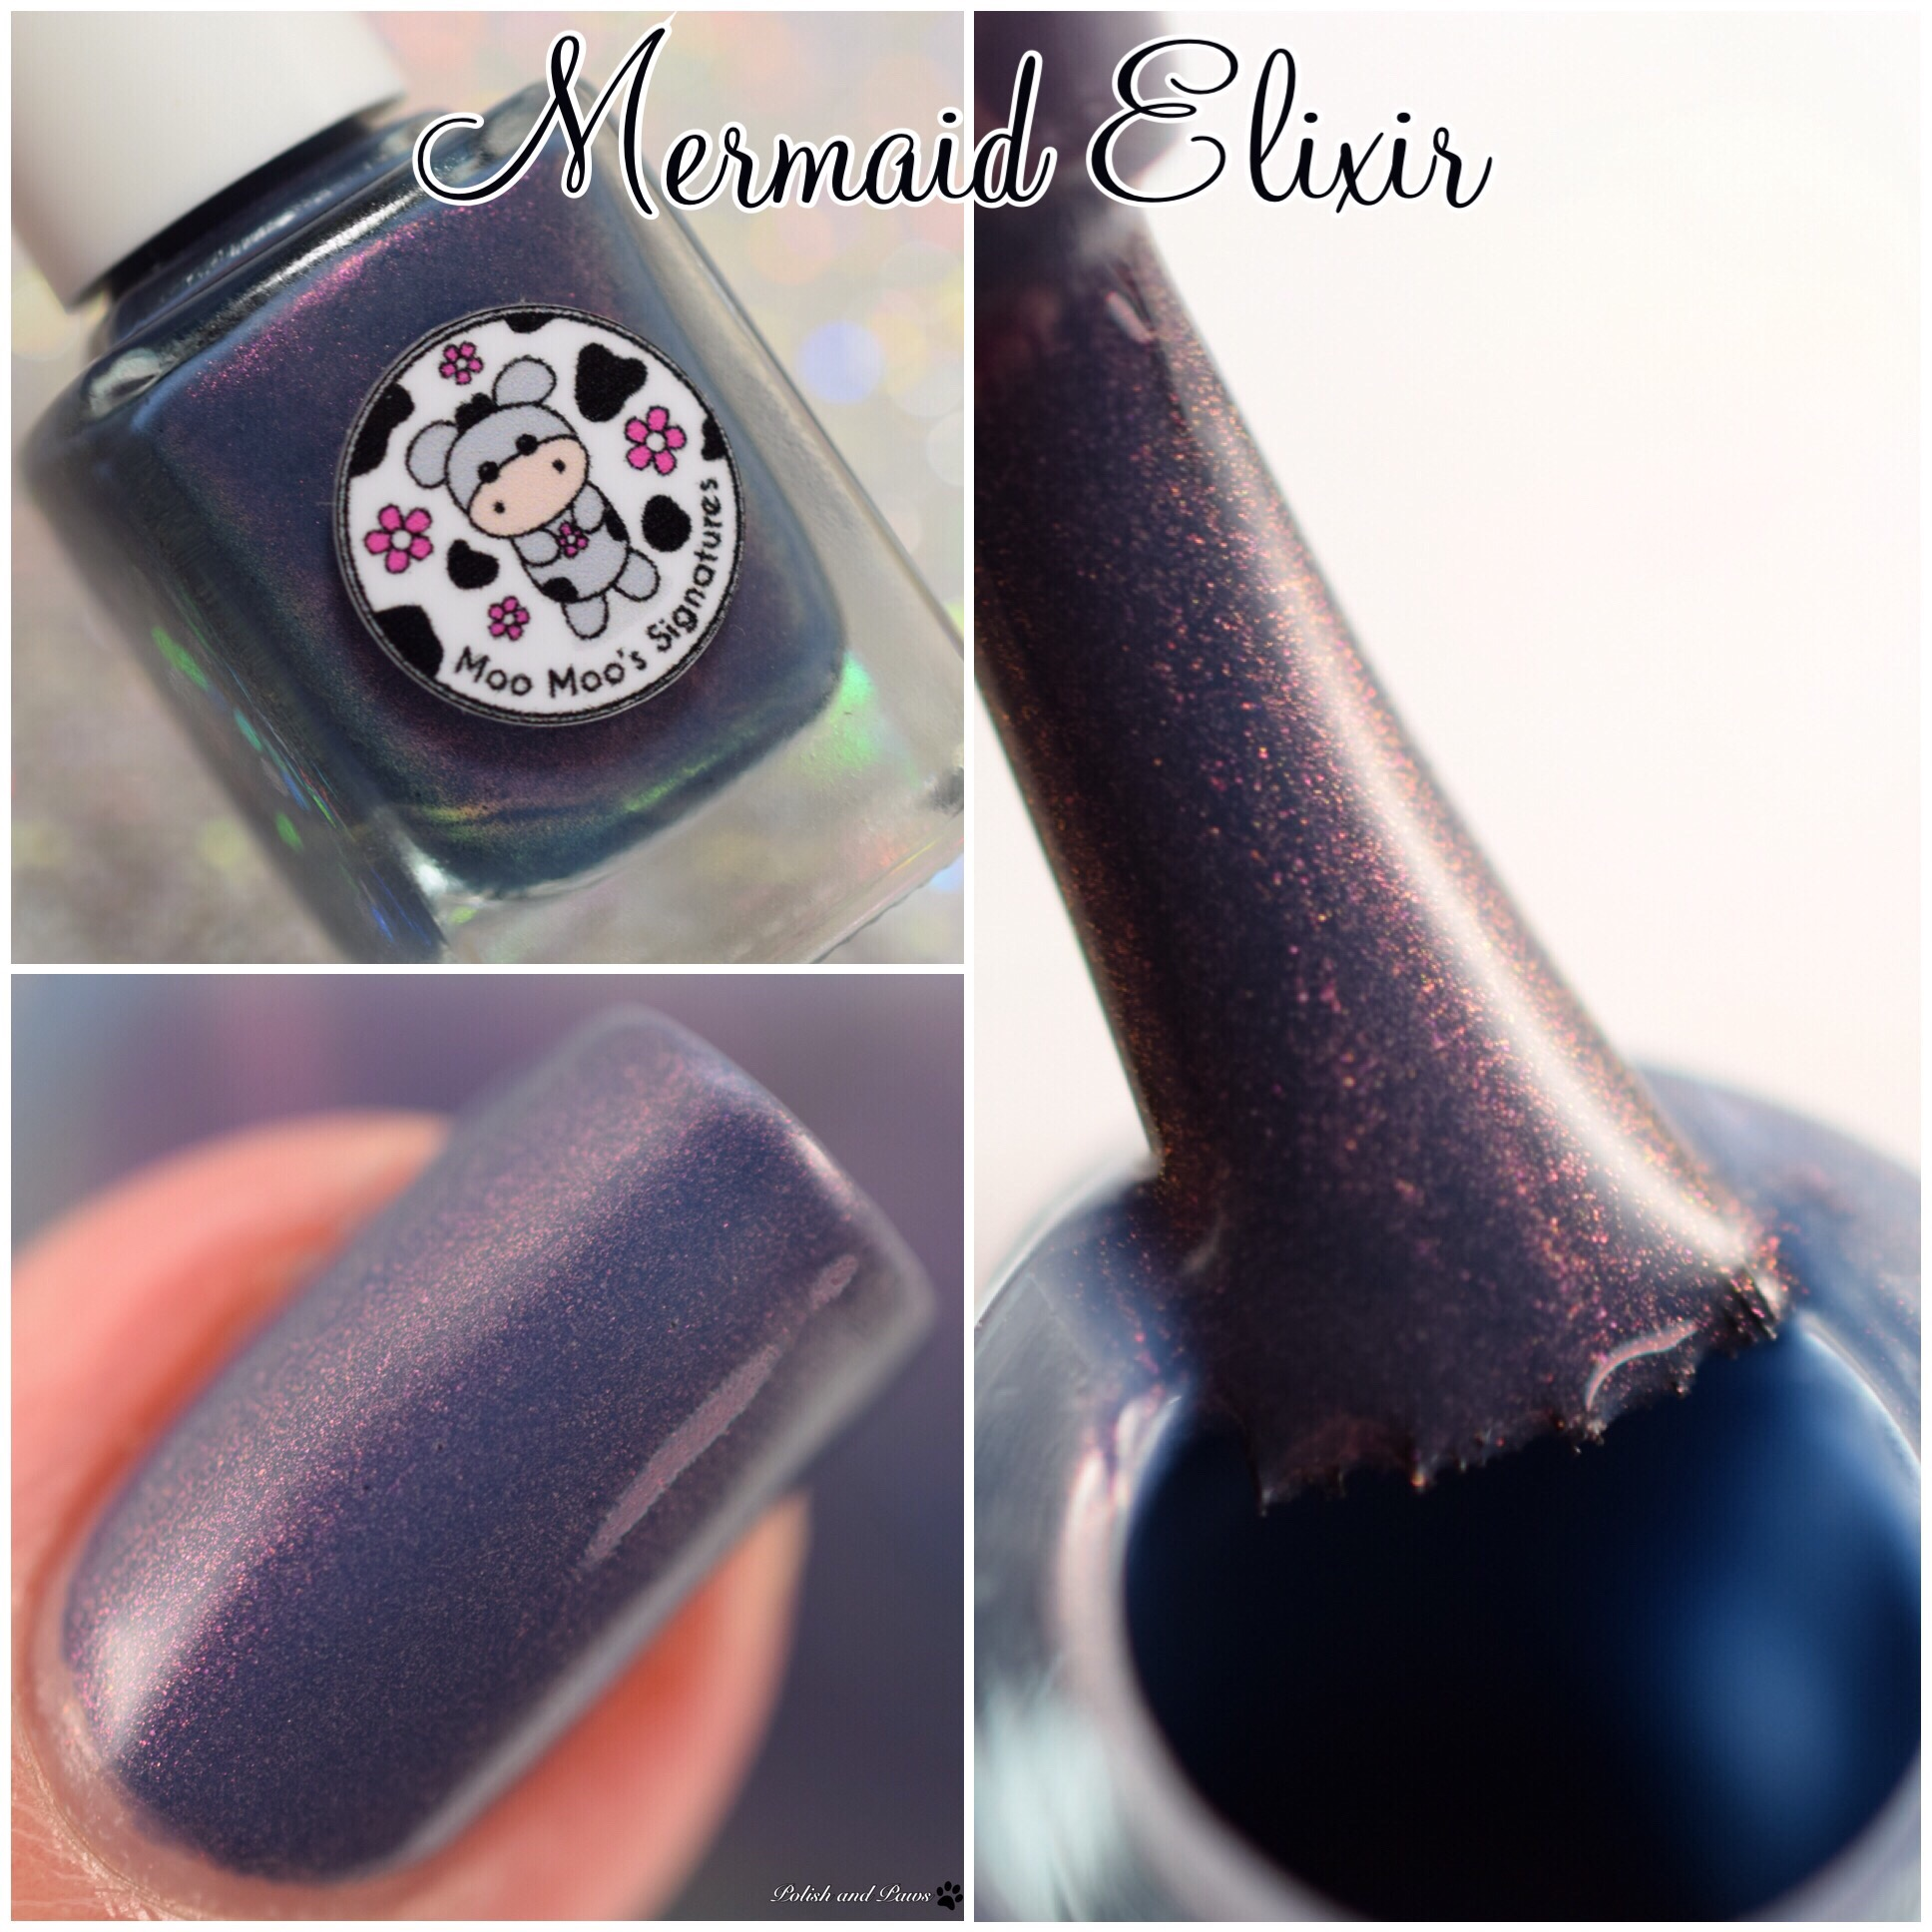 Moo Moo's Signatures Mermaid Elixir